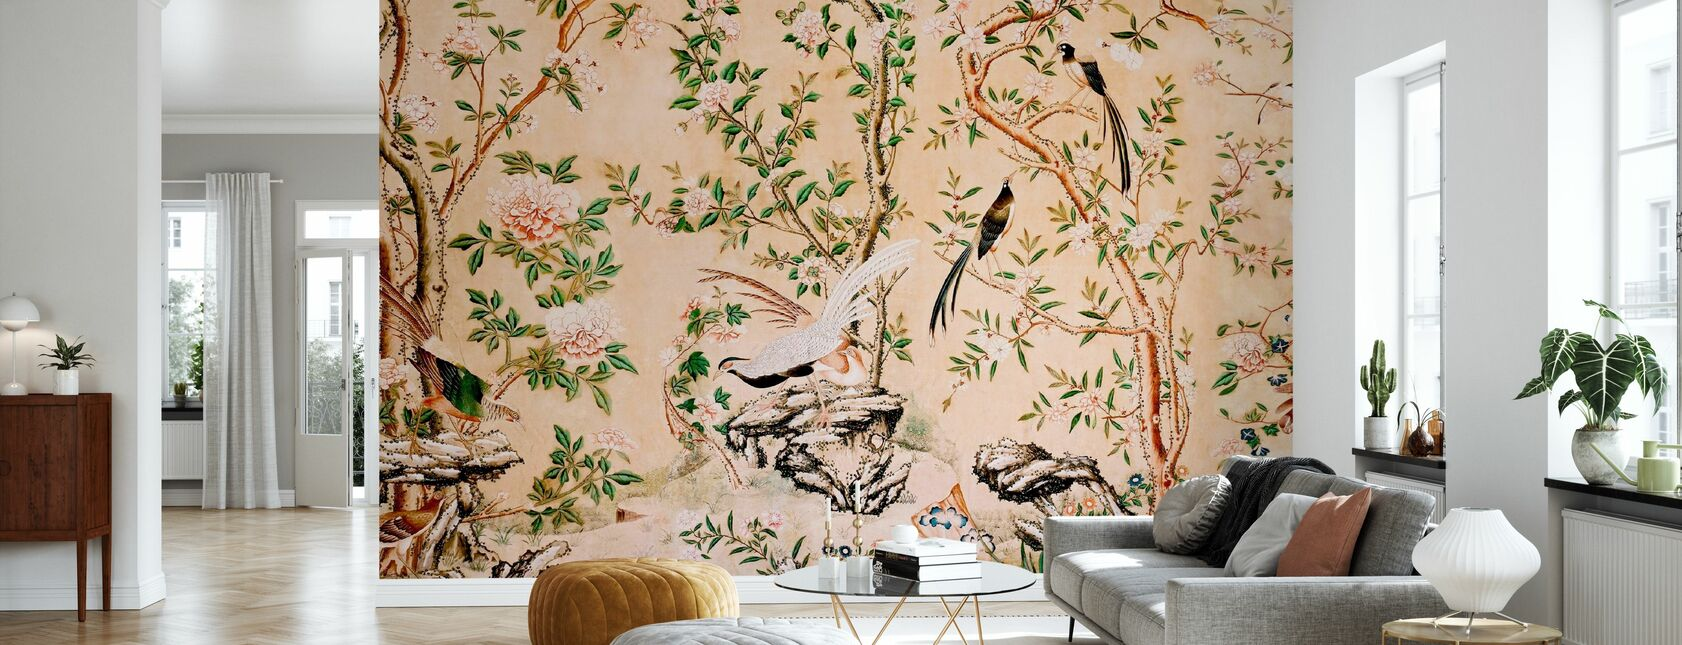 Chinoiserie - Tapet - Stue